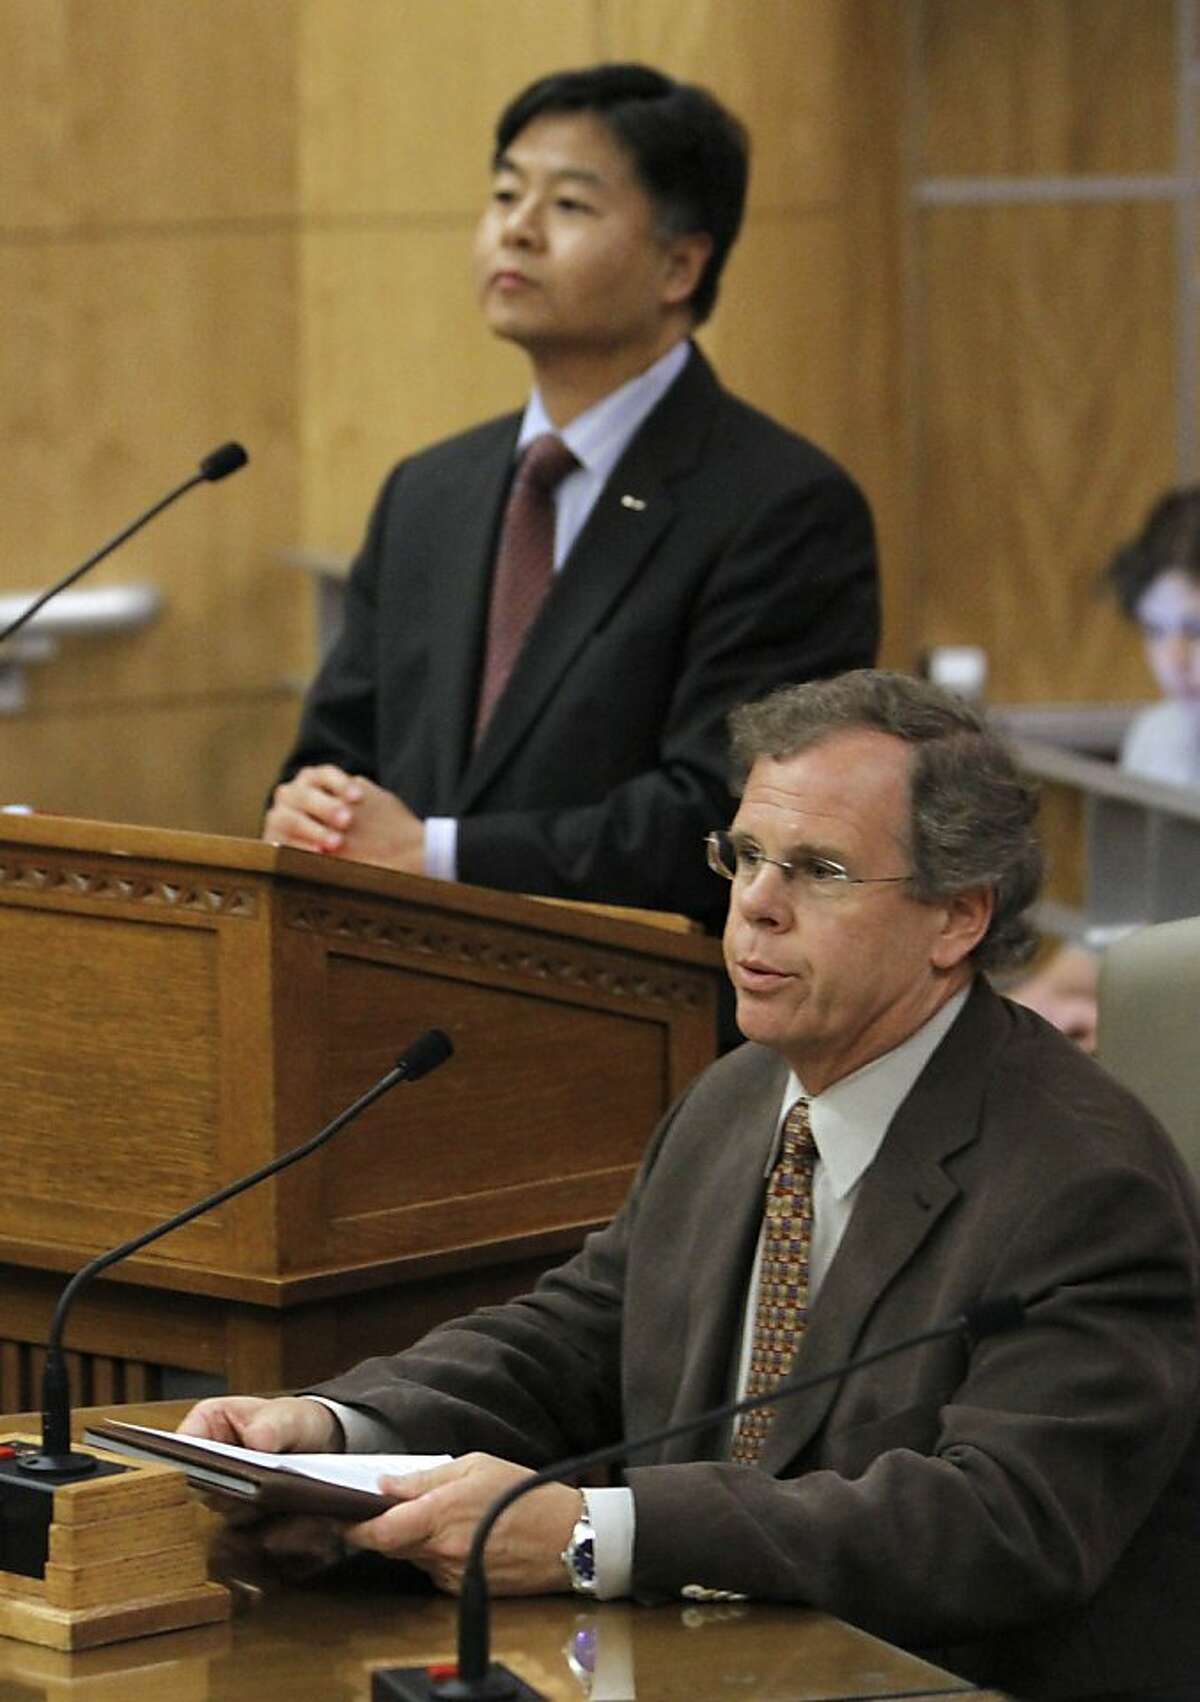 Attorney Peter Drake, executive director of the Coming Out Into Light Foundation, right, speaks about his negative experiences while receiving a controversial form of psychotherapy aimed at making gay people straight, while testifying in favor of a bill to ban the therapy during a hearing at the Capitol in Sacramento, Calif., Tuesday, May 8, 2012. The bill, SB1172, by state Sen.Ted Lieu, D-Torrence, left, would prohibit so-called reparative therapy for minors and obligate adults to sign a release form stating that the counseling is ineffective and possibly dangerous. It was passed by the Senate Judiciary Committee 3-1. (AP Photo/Rich Pedroncelli)